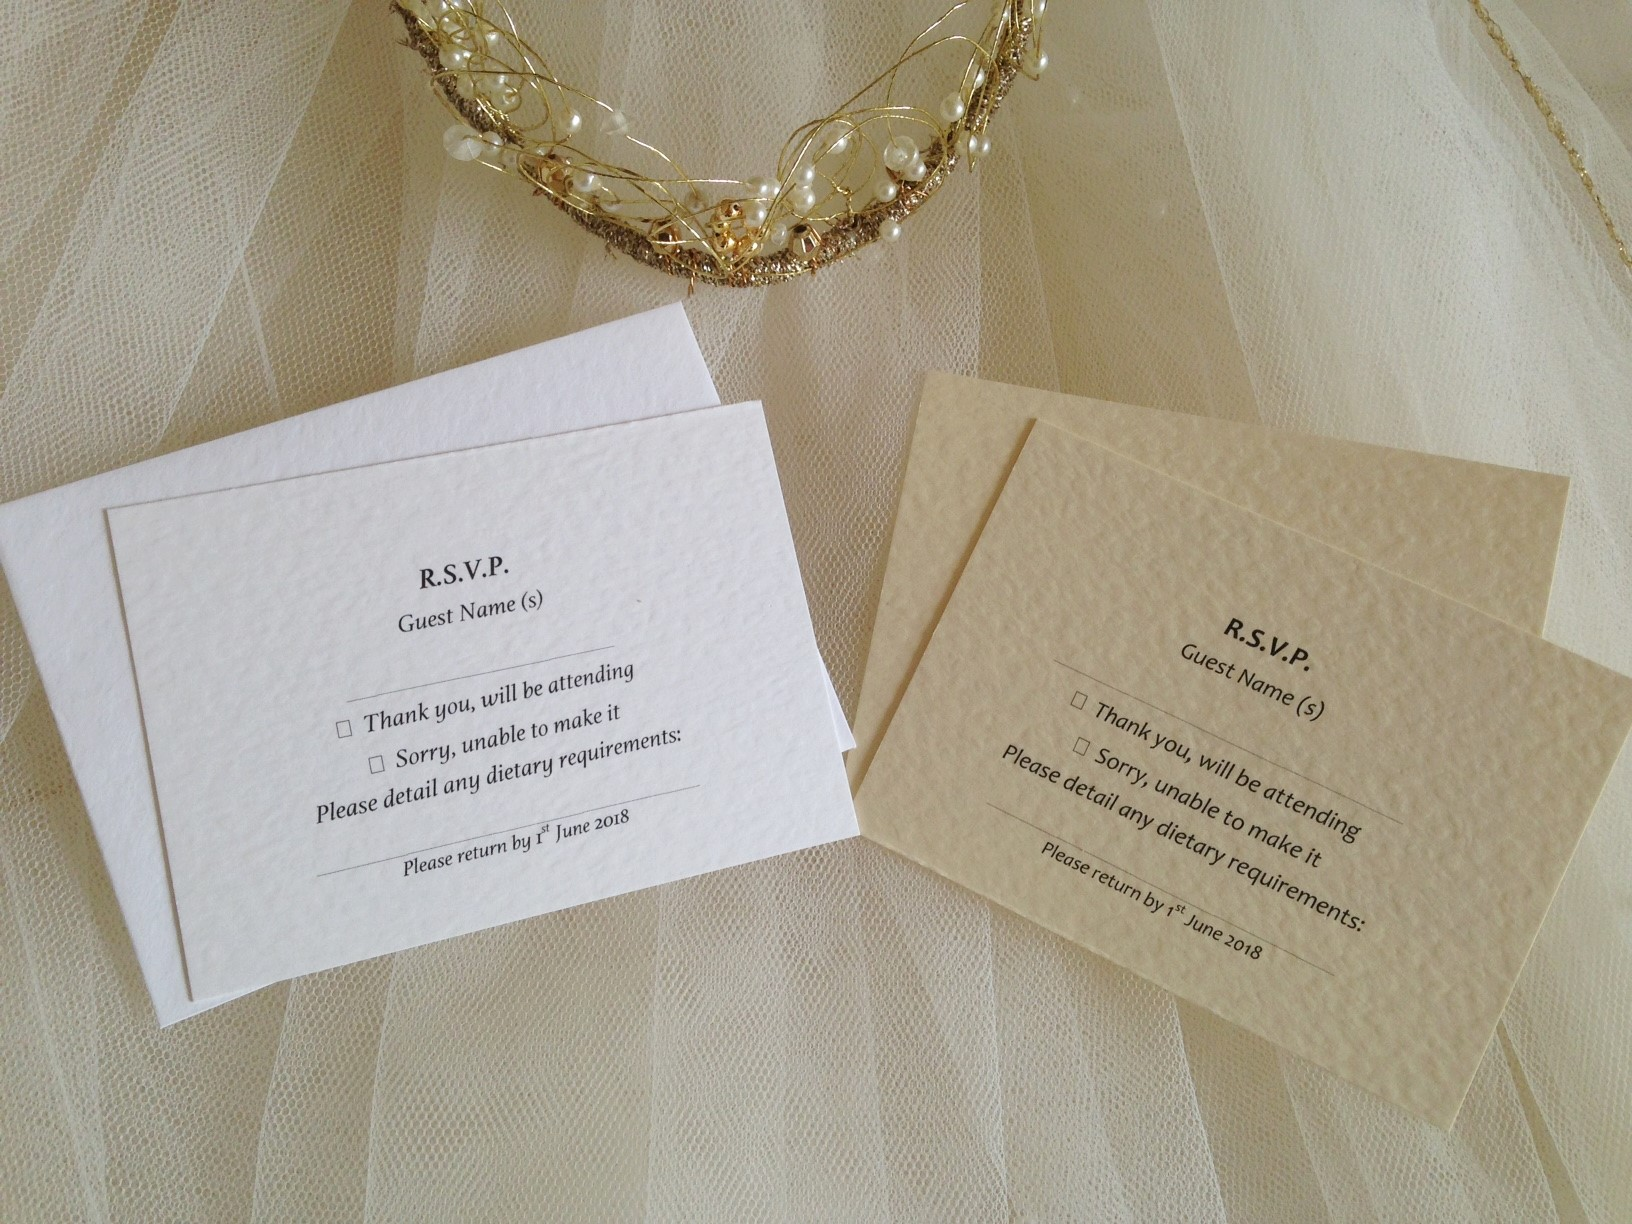 Wedding Invitations With Response Cards And Envelopes: RSVP Cards And Envelopes